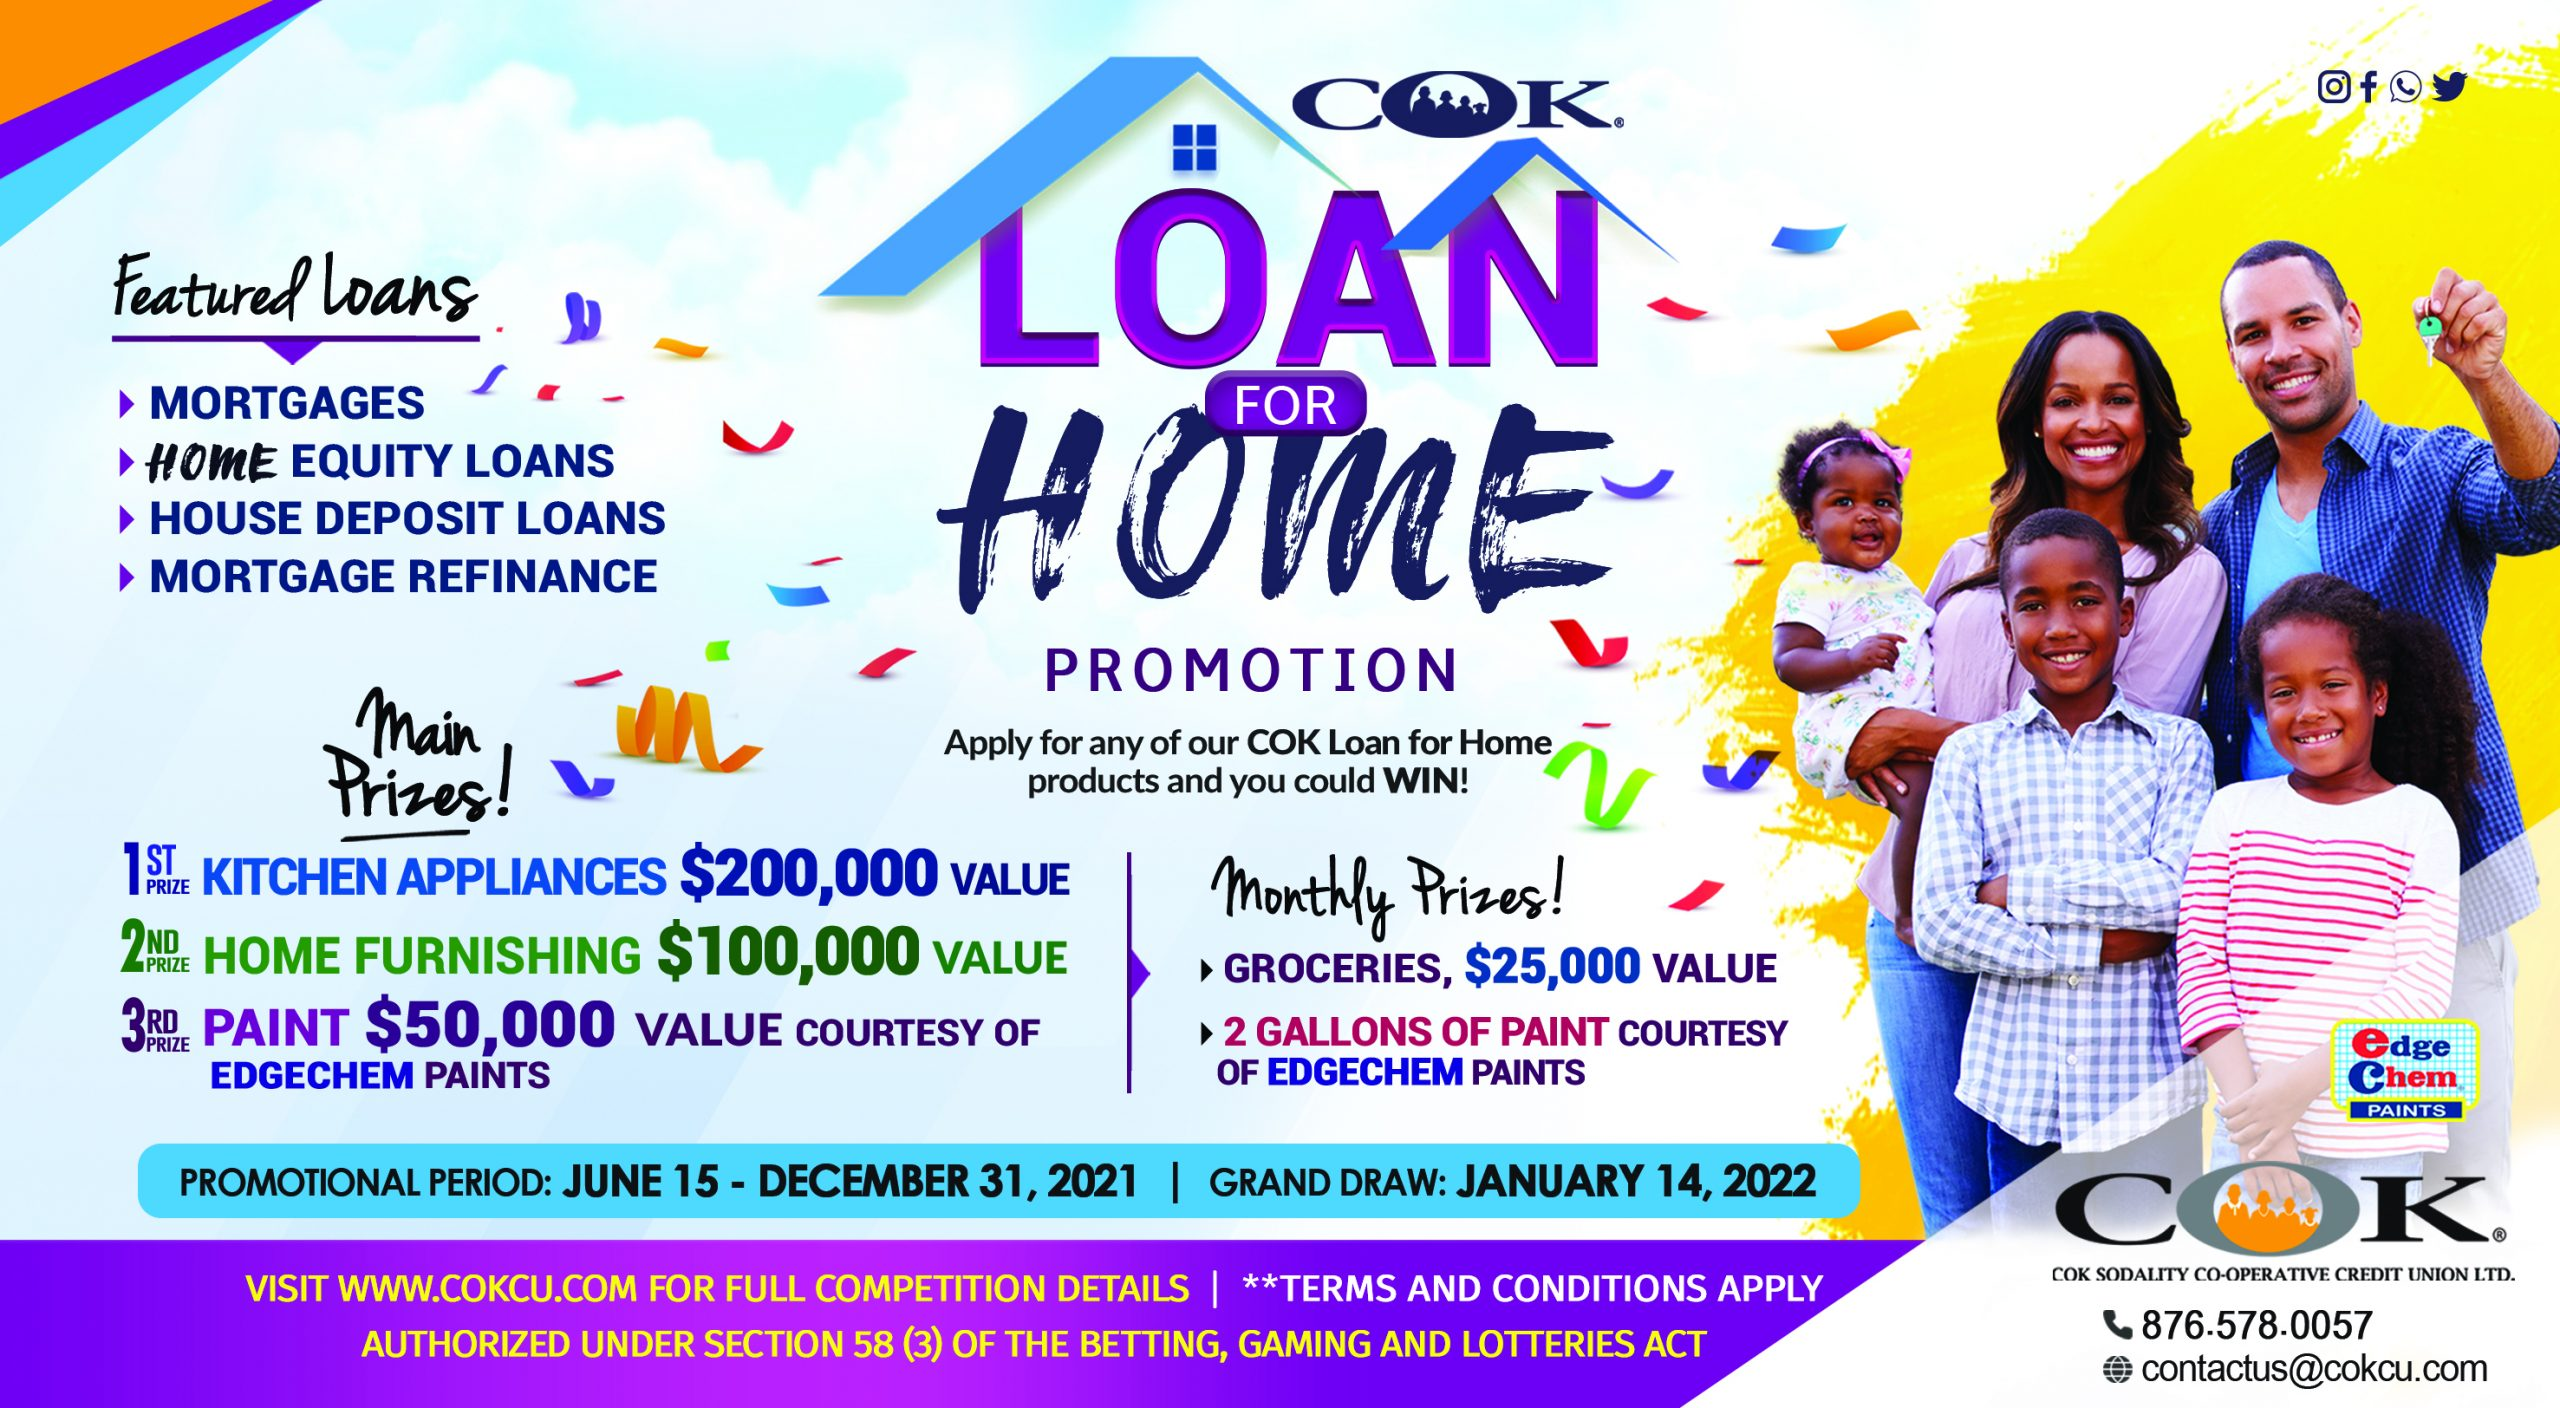 Loan for Home Campaign Rules